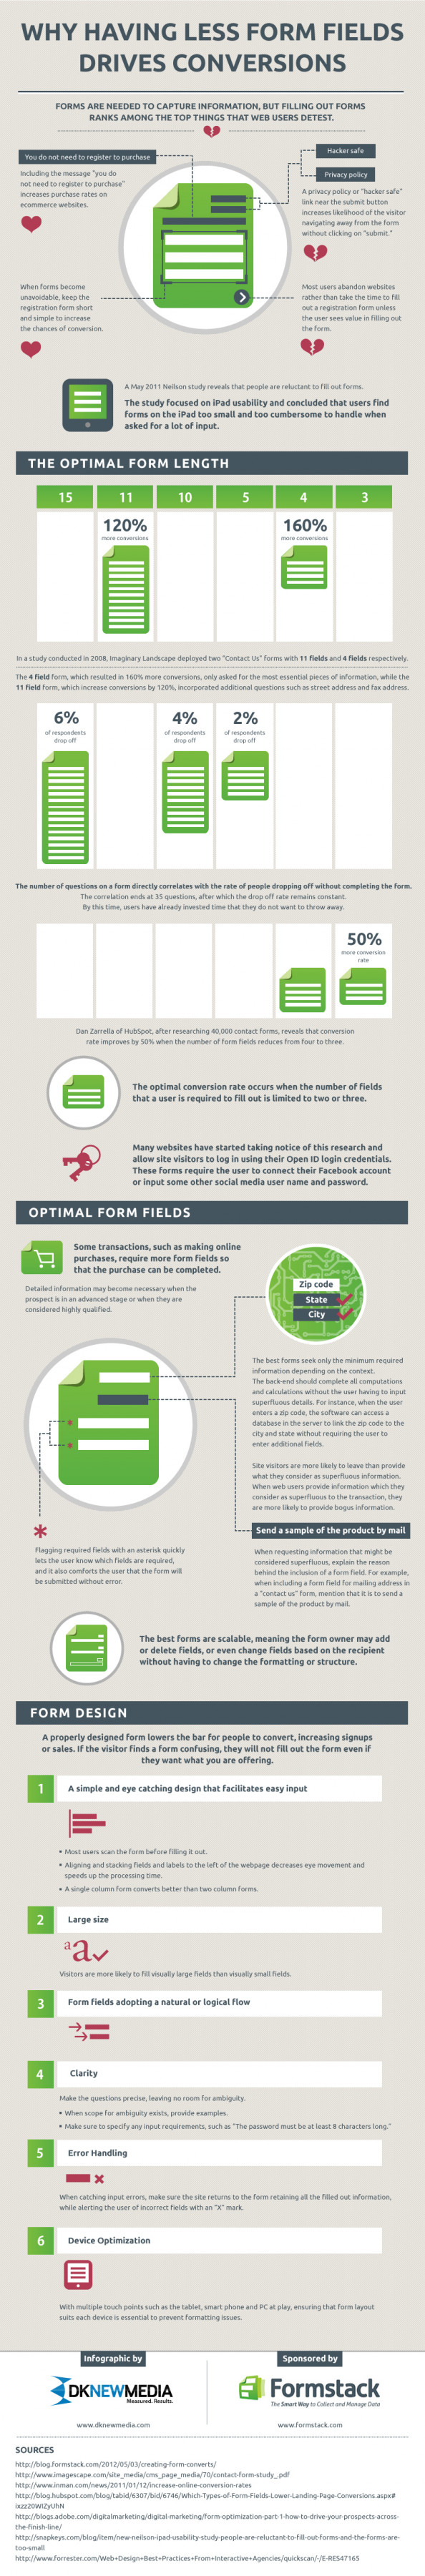 Less Form Fields Drives Conversions Infographic